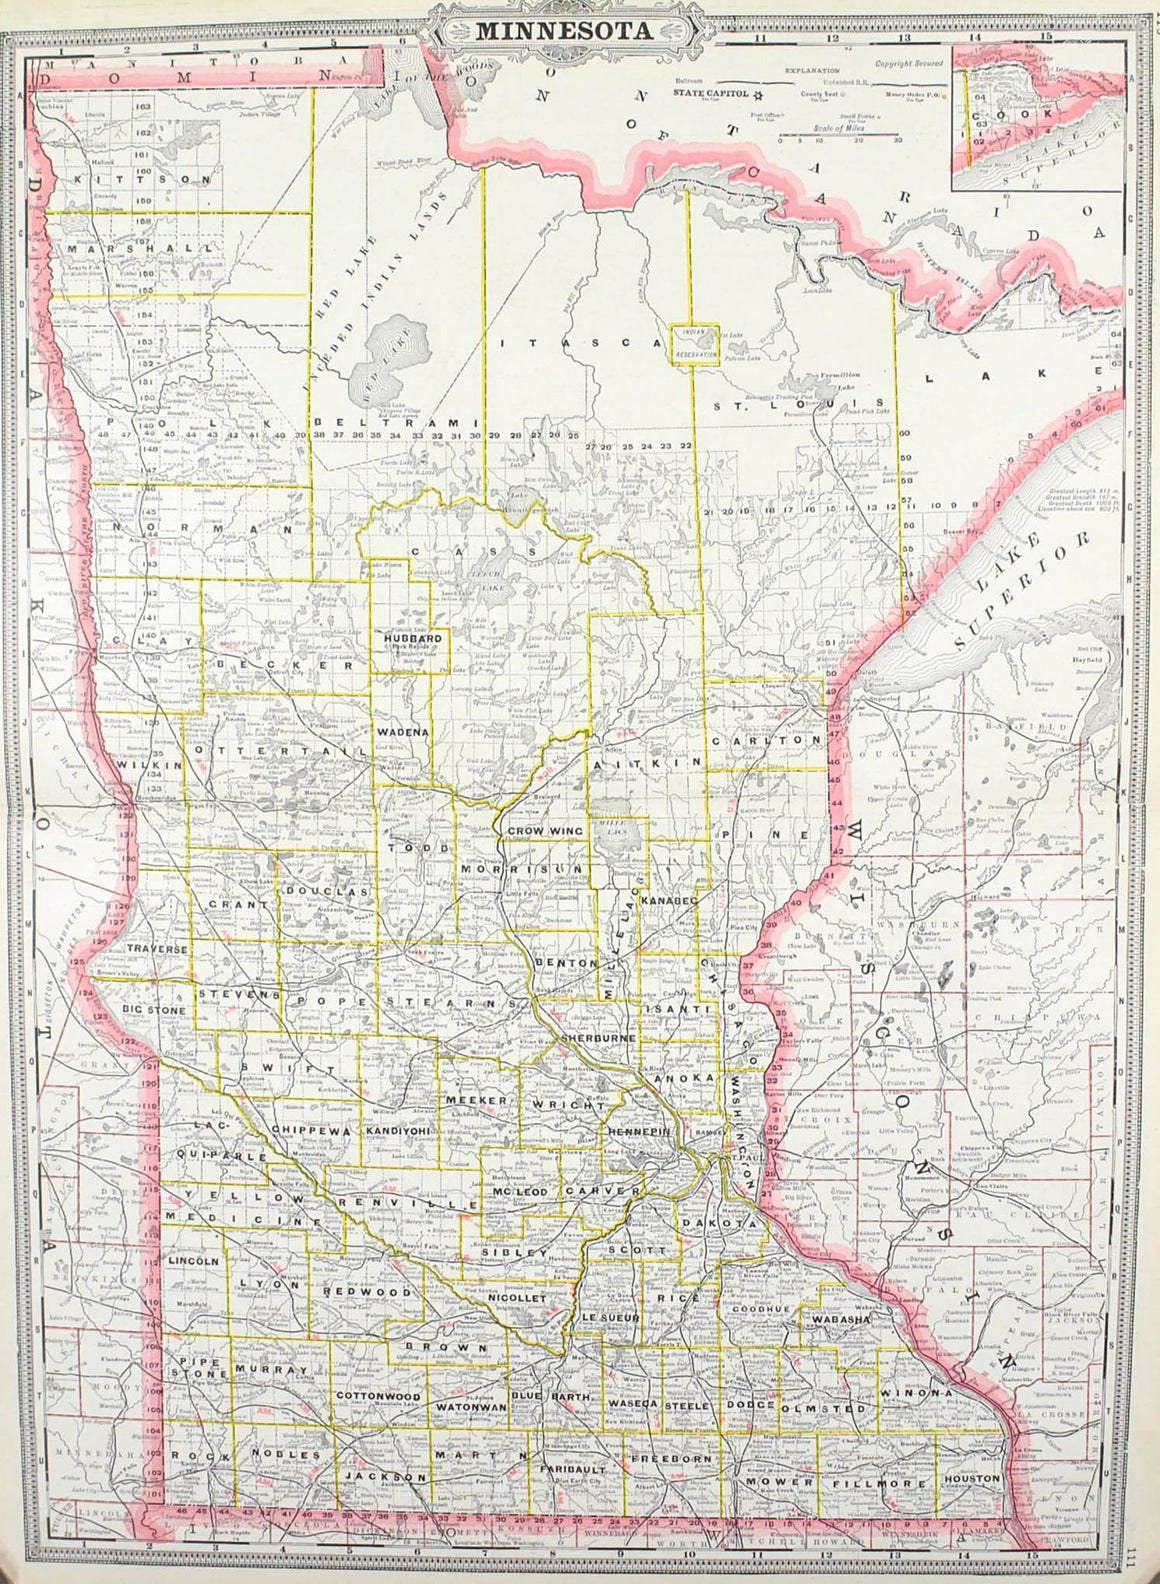 1887 Railroad and County Map of Minnesota